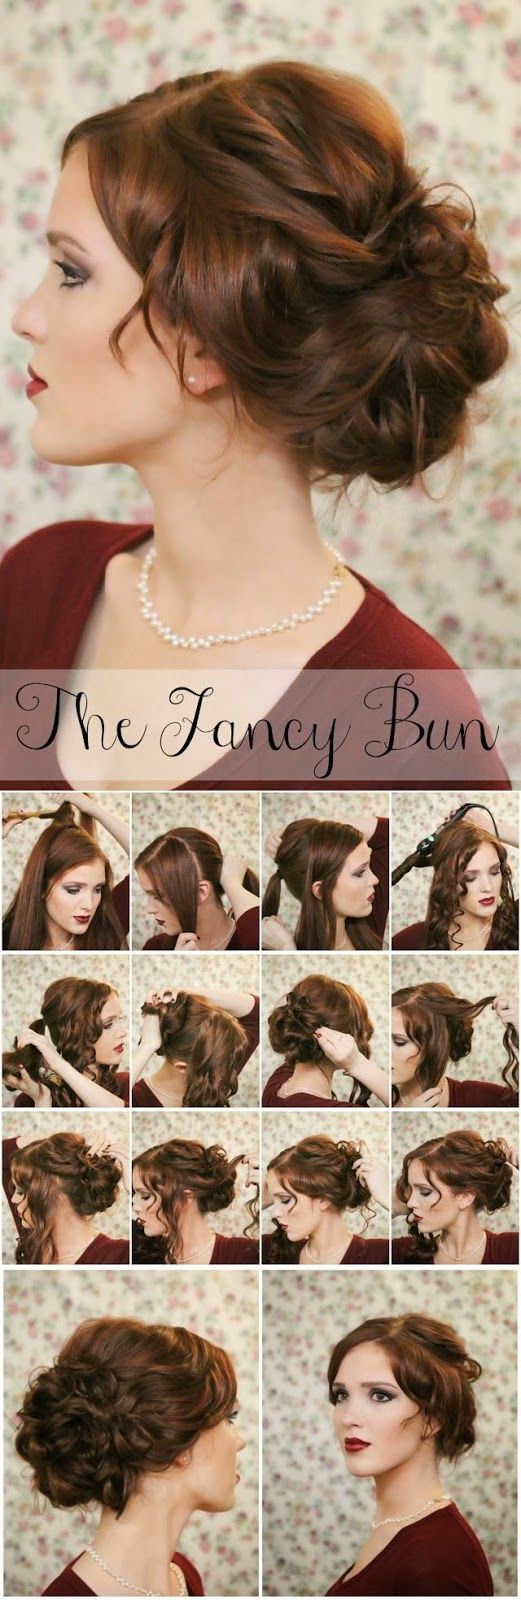 Easy Simple Knotted Bun Updo Hairstyle Tutorials :Wedding Hairstyle   Haircuts & Hairstyles for short long medium hair: Hairstyles, Wedding Hair, Fancy Bun, Hair Styles, Updo